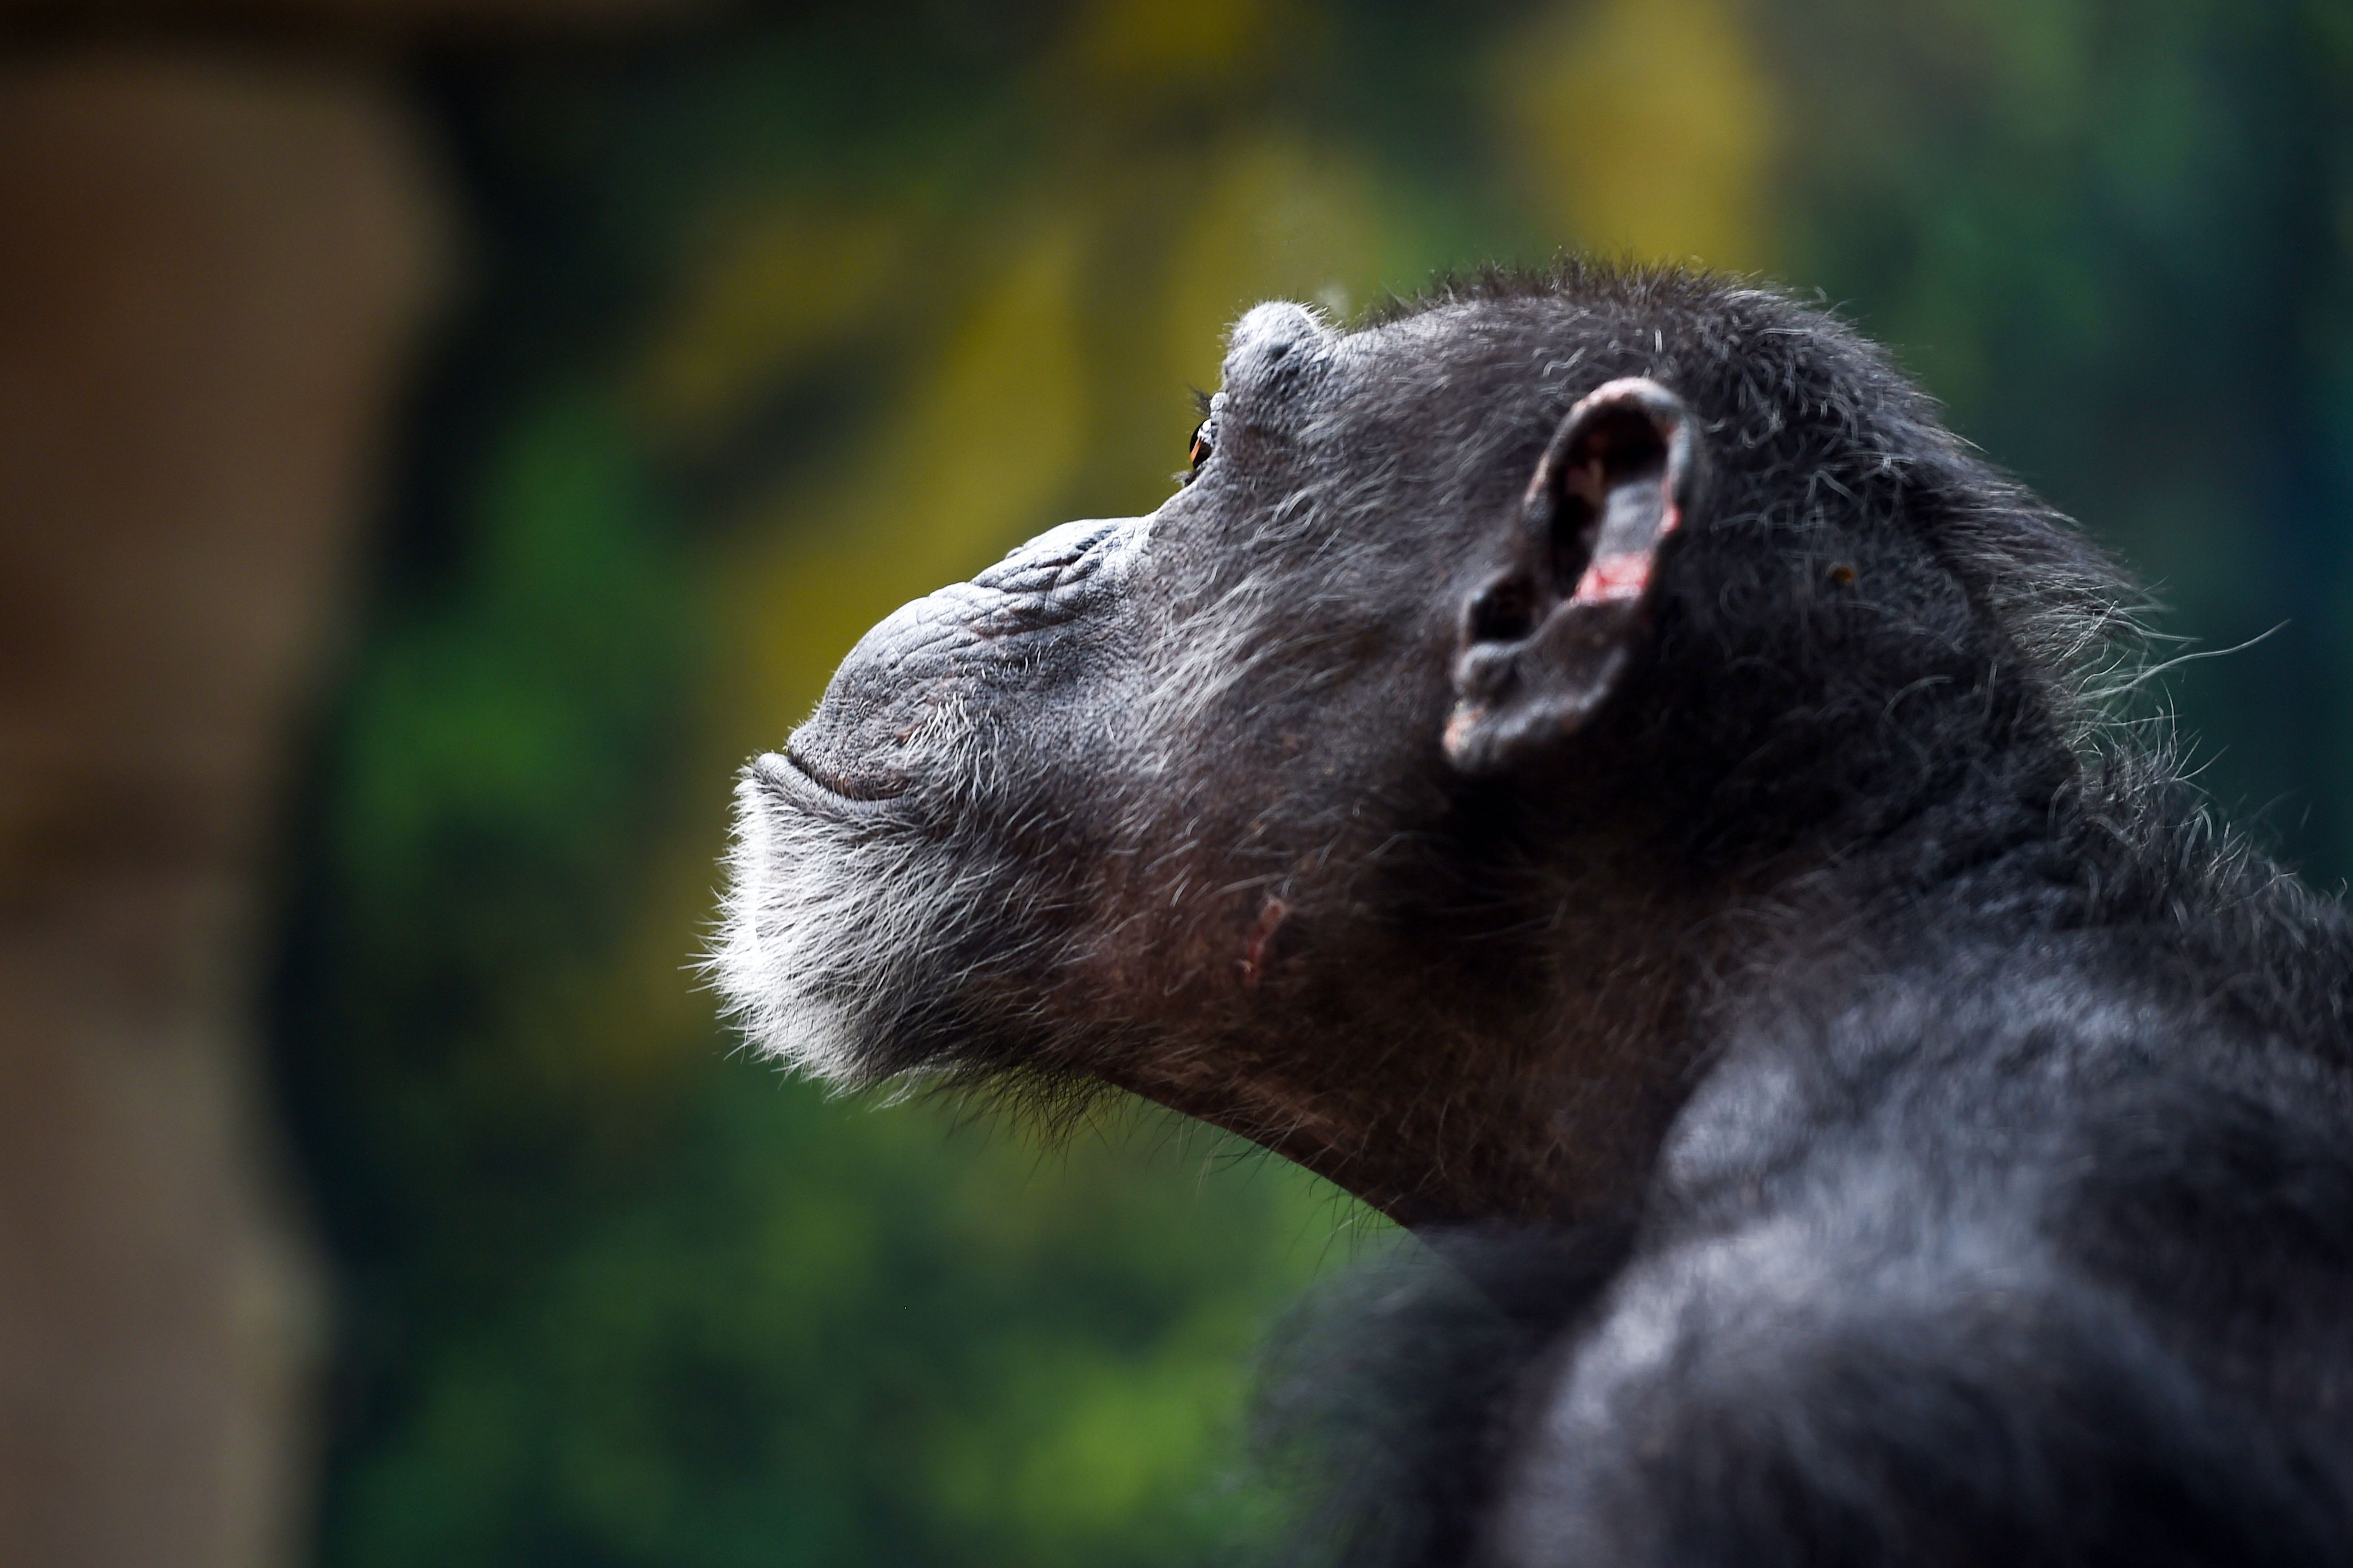 A chimpanzee looks on inside its enclosure on August 1, 2018 at The Beauval Zoo in Saint-Aignan-sur-Cher, central France. (Photo by GUILLAUME SOUVANT / AFP)        (Photo credit should read GUILLAUME SOUVANT/AFP/Getty Images)